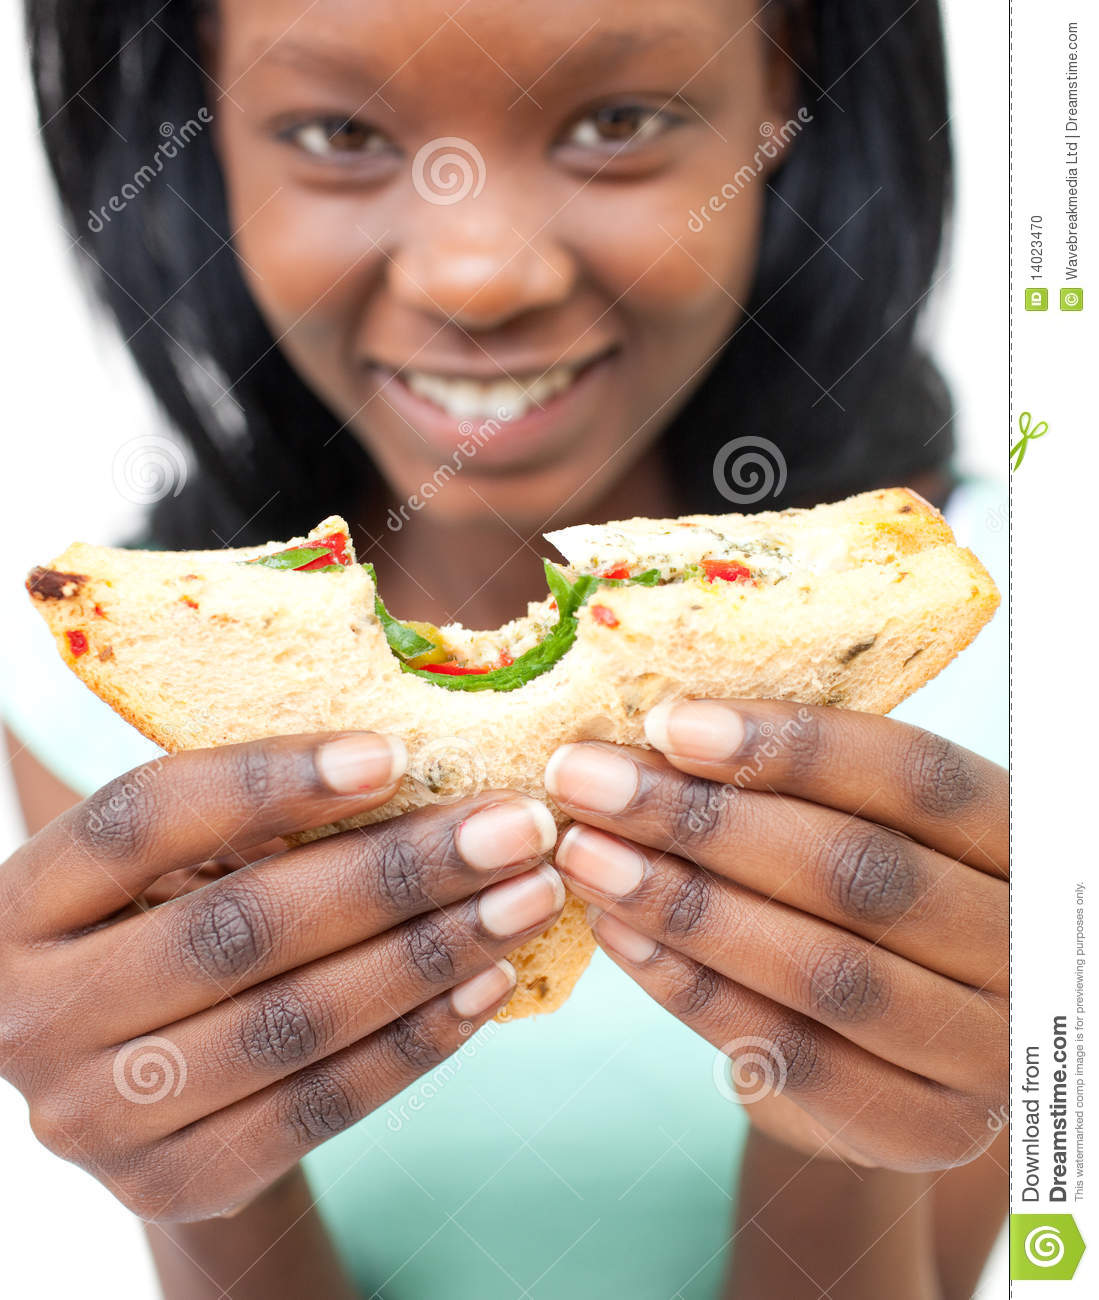 sandwich women Sandwich – a sandwich woman is accused of stealing a puppy from a van on saturday morning outside harvest chapel church, according to a news release from the dekalb county sheriff's office.